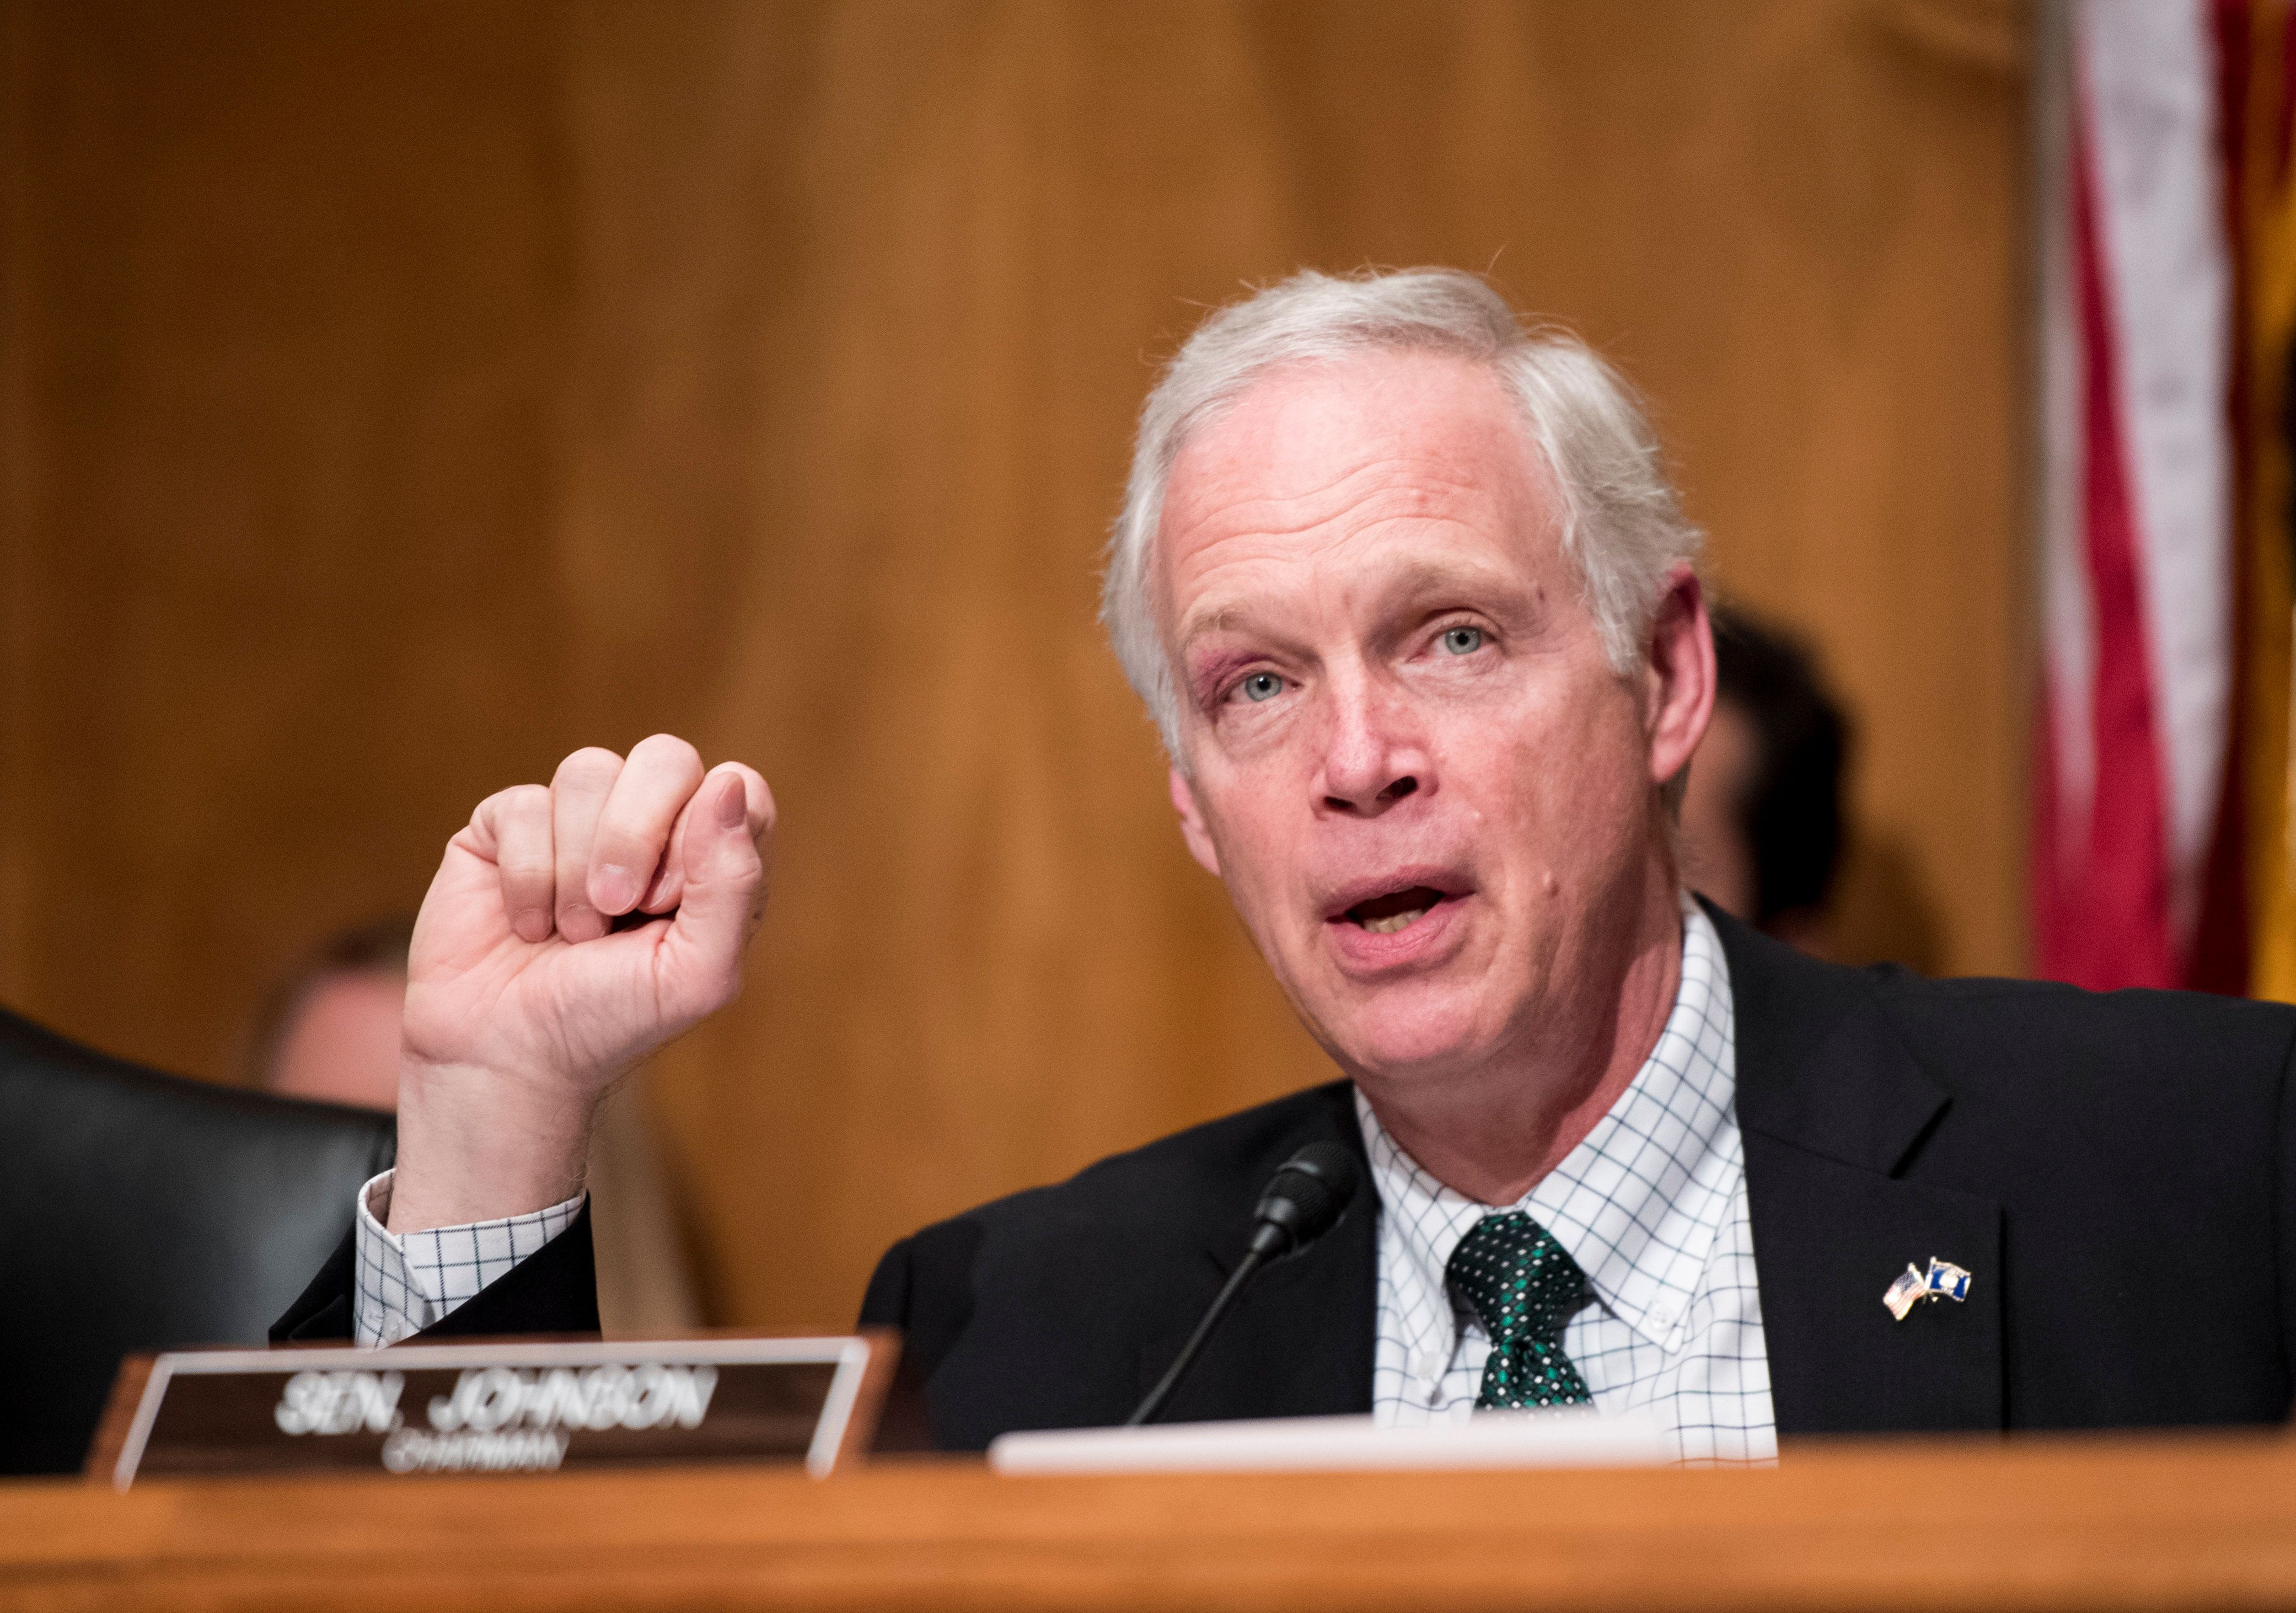 UNITED STATES - JUNE 7: Chairman Ron Johnson, R-Wis., speaks during the Senate Homeland Security and Governmental Affairs Committee hearing on 'Frustrated Travelers: Rethinking TSA Operations to Improve Passenger Screening and Address Threats to Aviation' on Tuesday, June 7, 2016. (Photo By Bill Clark/CQ Roll Call)